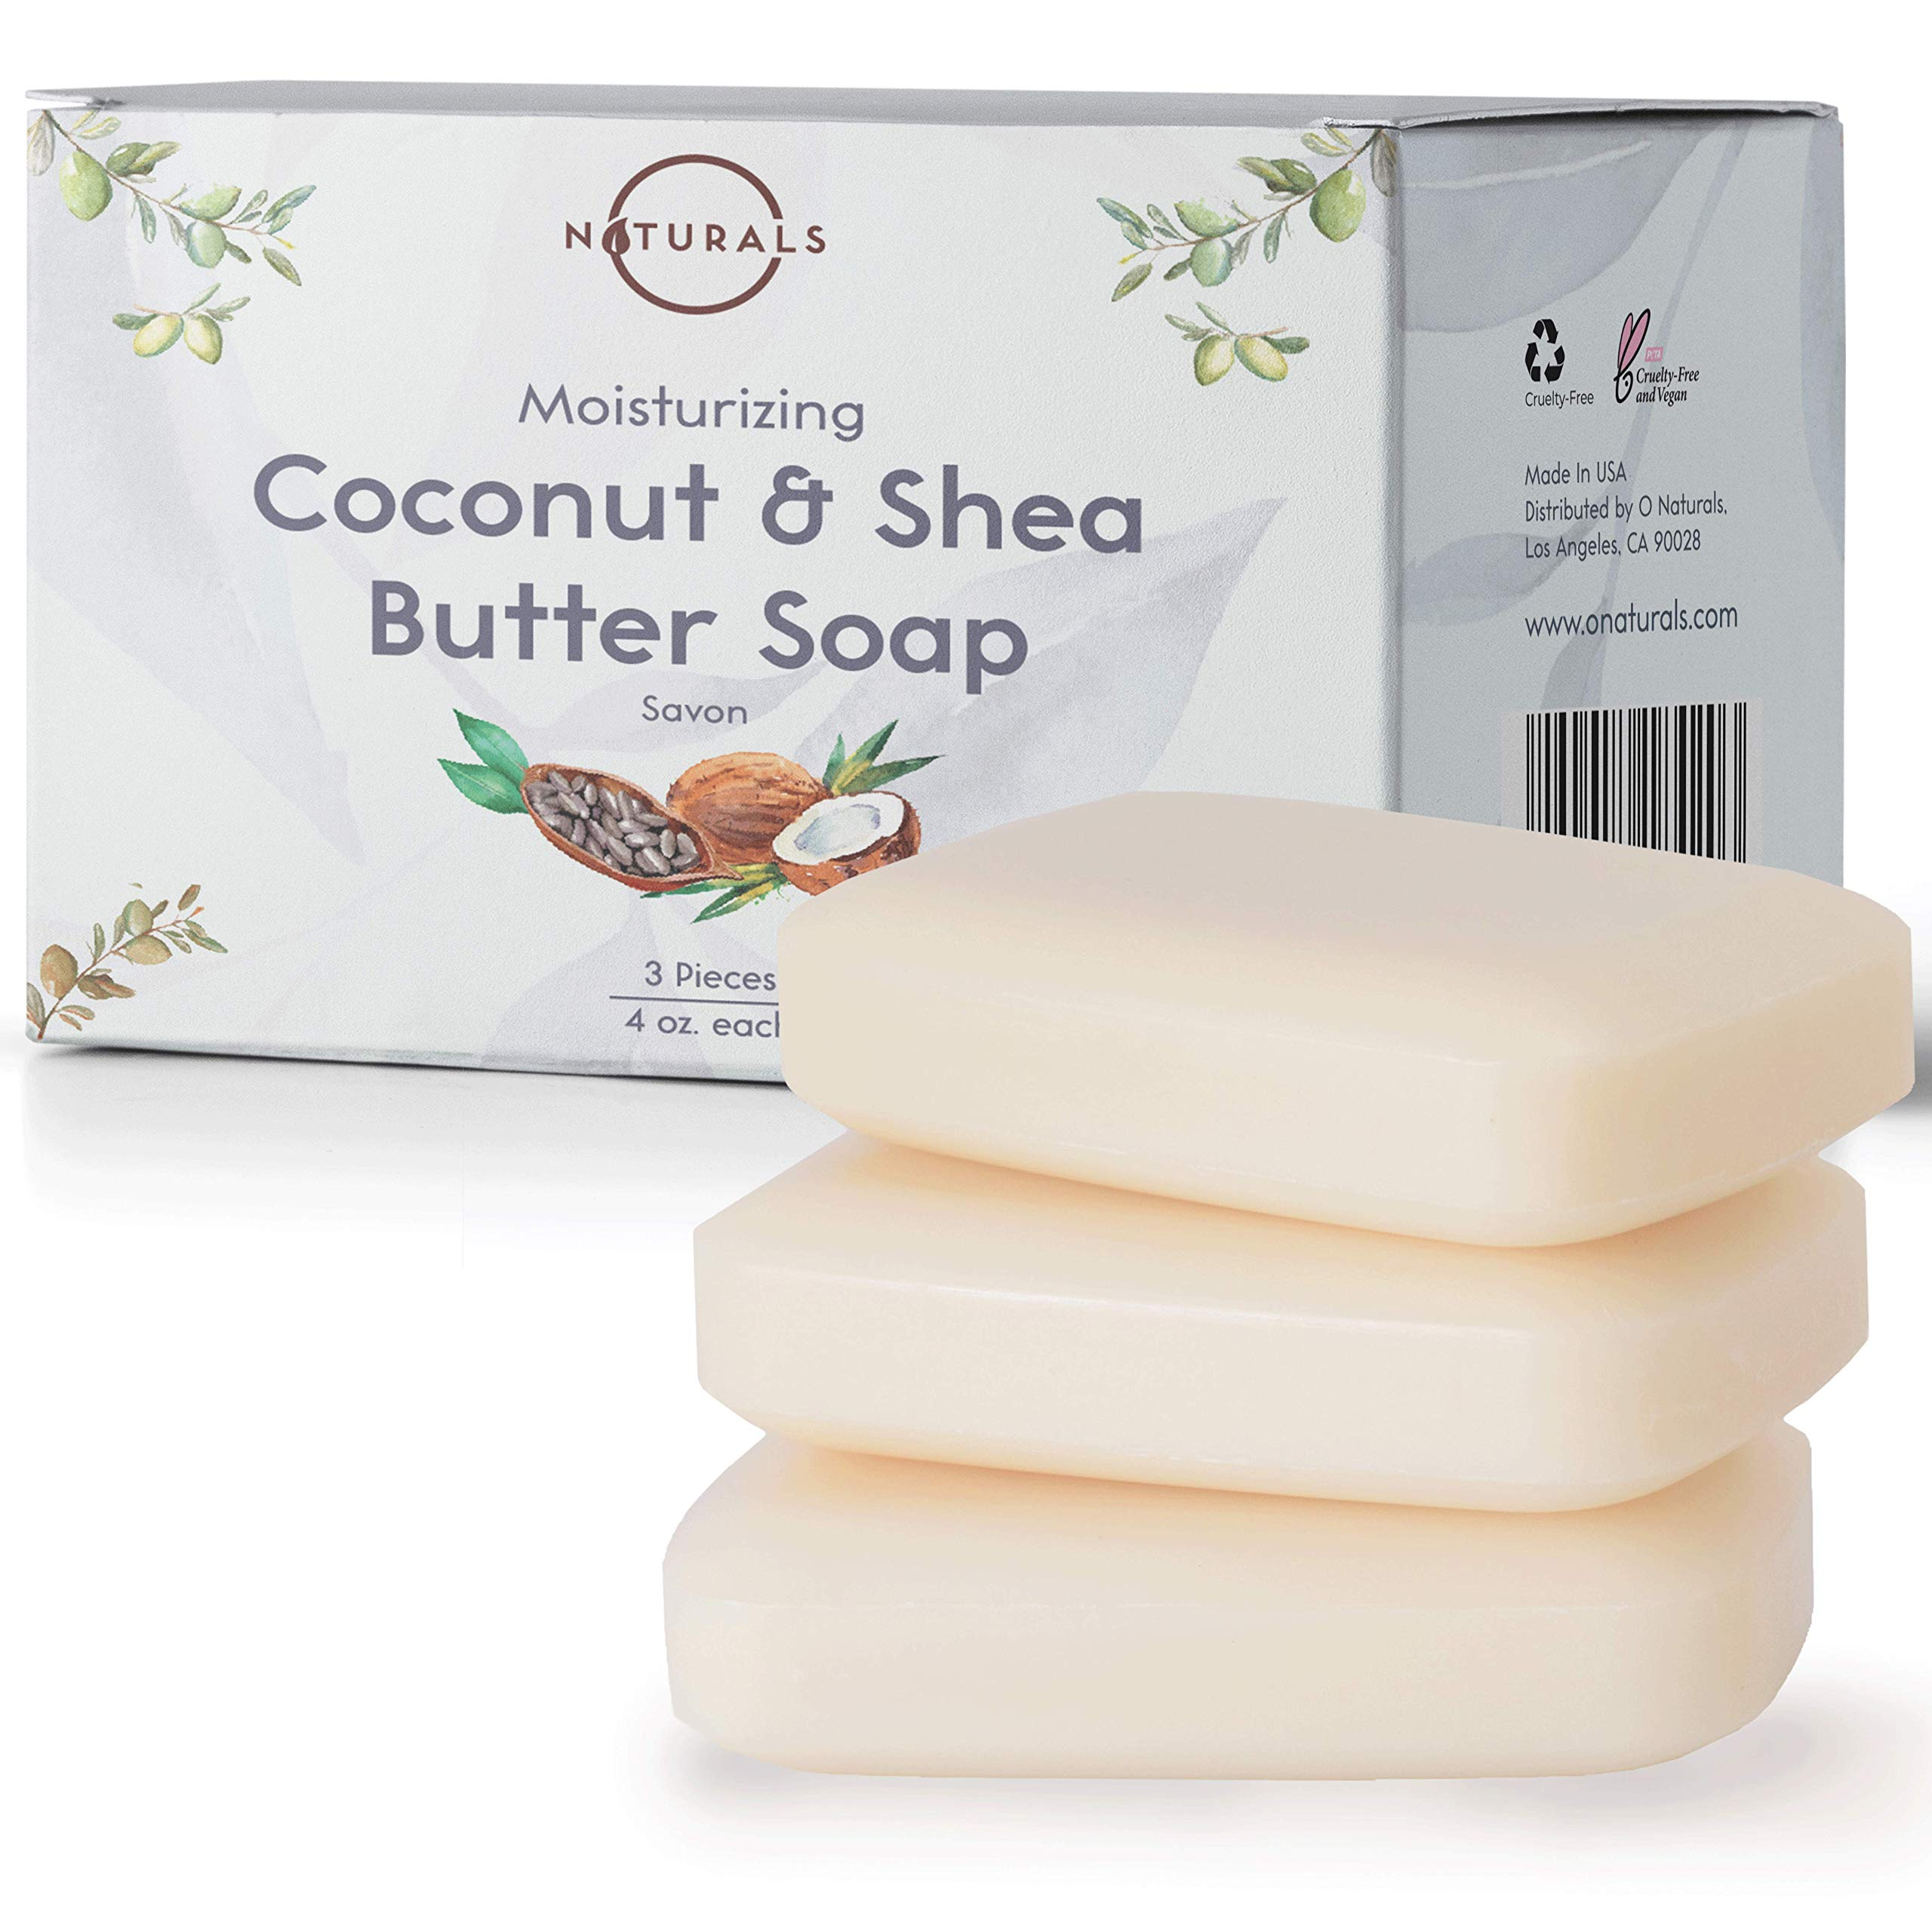 O Naturals 3 Piece Moisturizing Organic Coconut Oil, Shea Butter Bar Soaps. Softens, Nourishes Dry Skin & Sensitive Skin. Face, Hands & Body Soap. Made in USA. Triple Milled, Vegan 3pk 12oz Total